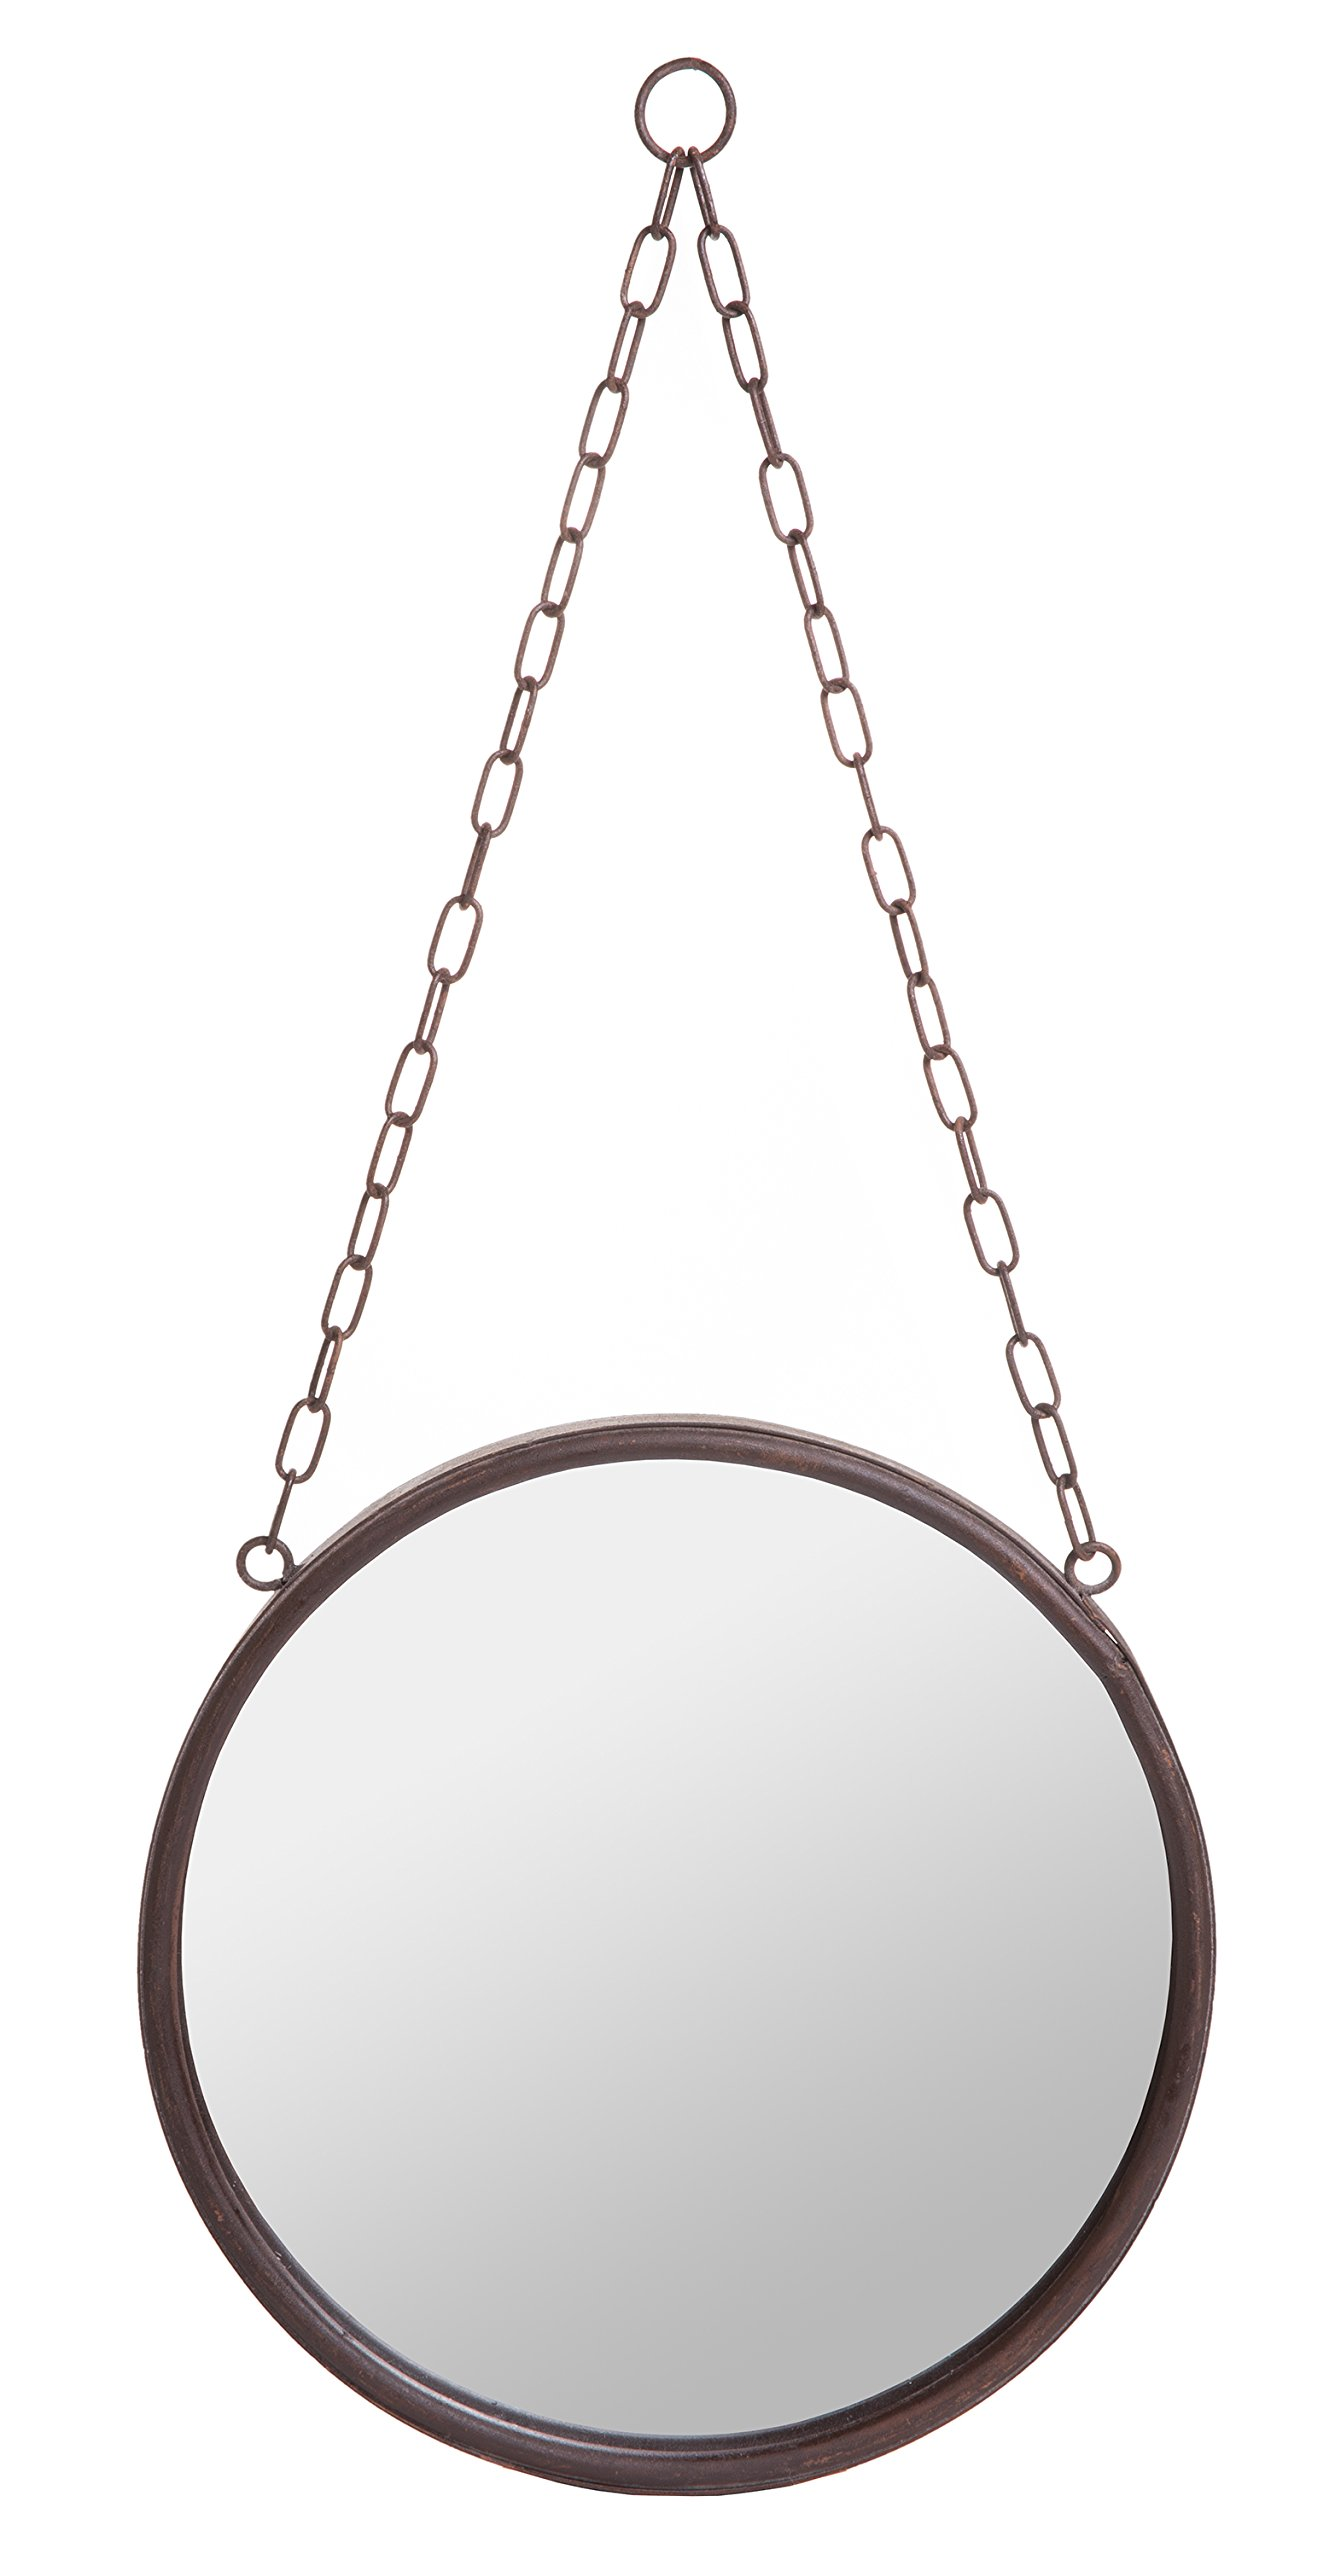 Decorative Round Hanging Wall Mirror w/Chain, Country Rustic Inspired Rust Finish, 10-inch